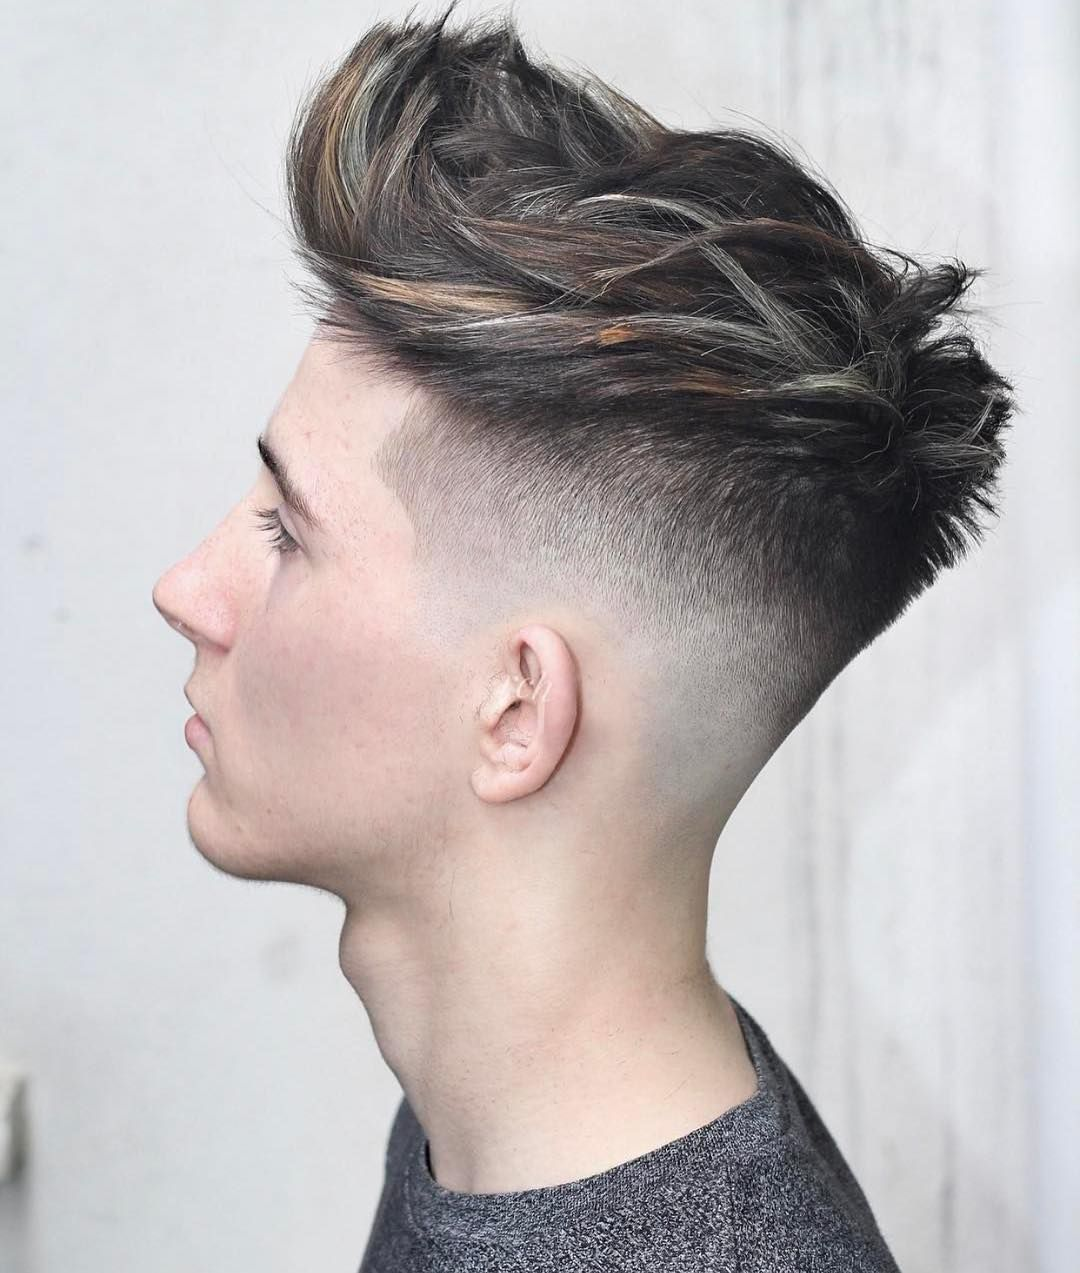 Hairmenstyle Official Hairmenstyle Fotos Y Videos De Instagram Thick Hair Styles Fade Haircut Dark Hair With Highlights